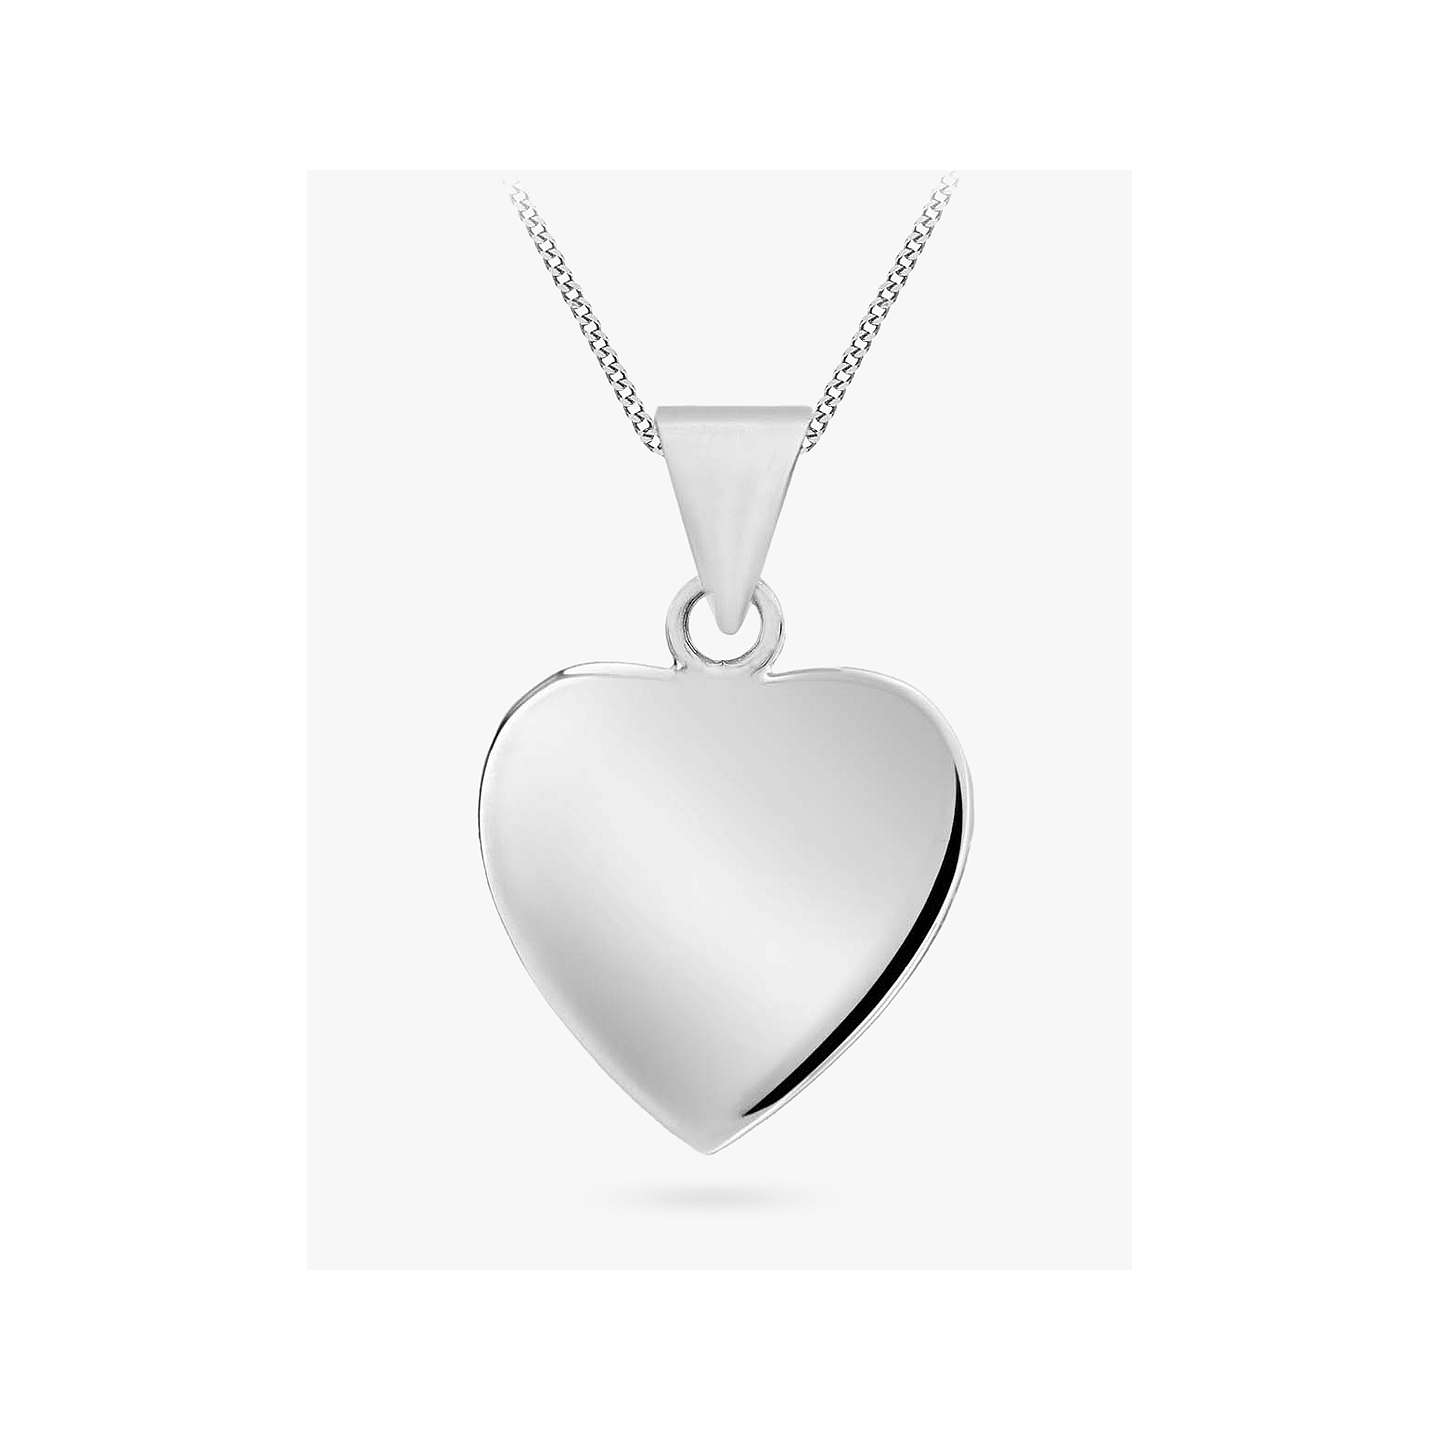 products jennifer fisher pendant mini necklace yg with heart micro stamp k